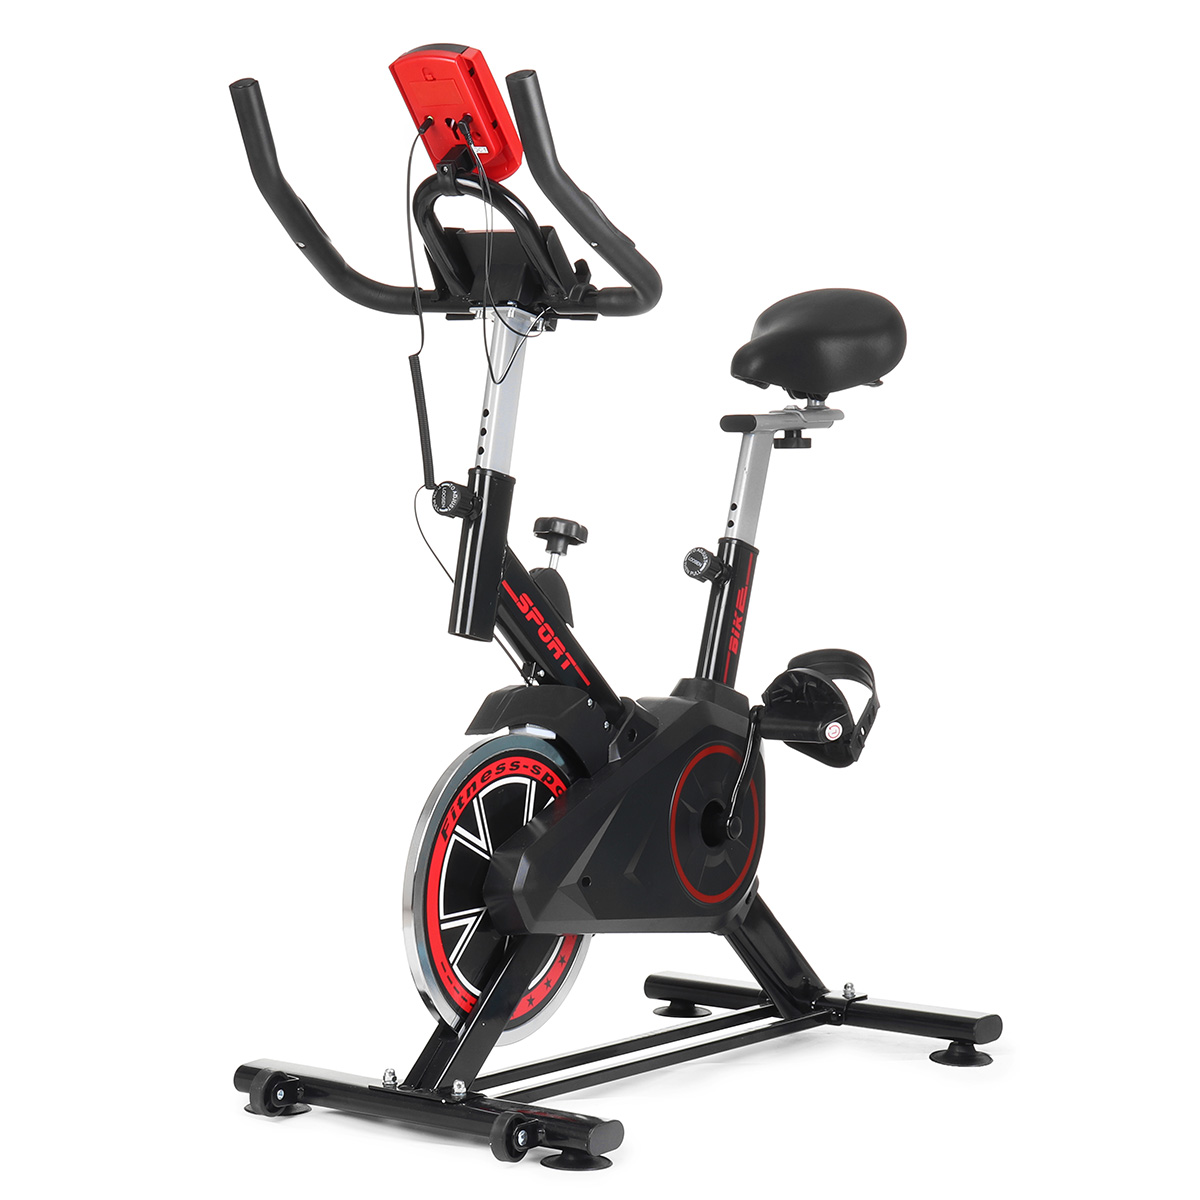 Fitness Exercise Bike Carbon Steel Ultra-Quiet Cycling Flywheel Training Bicycle Heavy Duty Sport Slimming Equipment